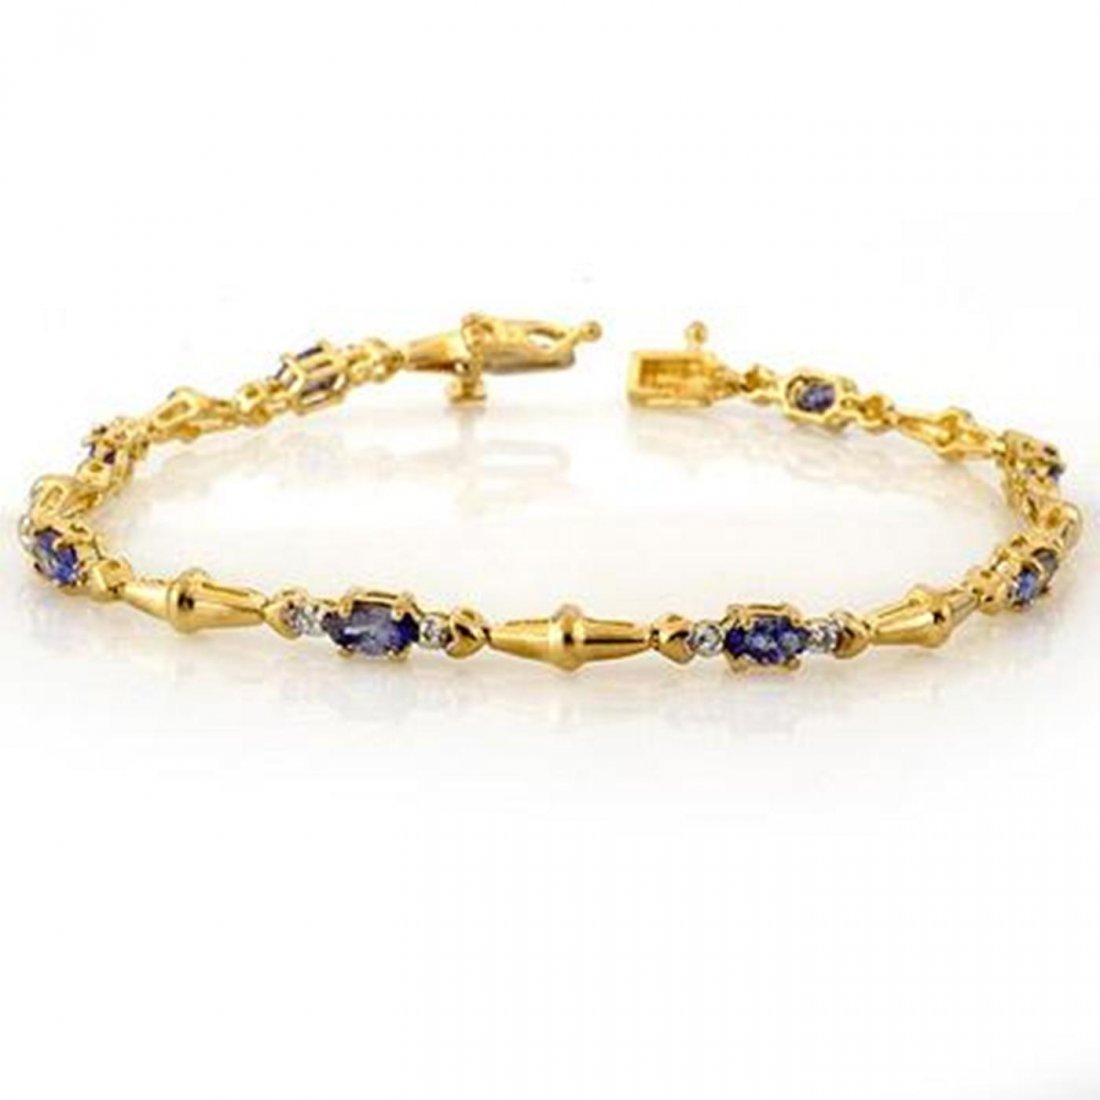 4J: Genuine 2.75 ctw Tanzanite & Diamond Bracelet 10K G